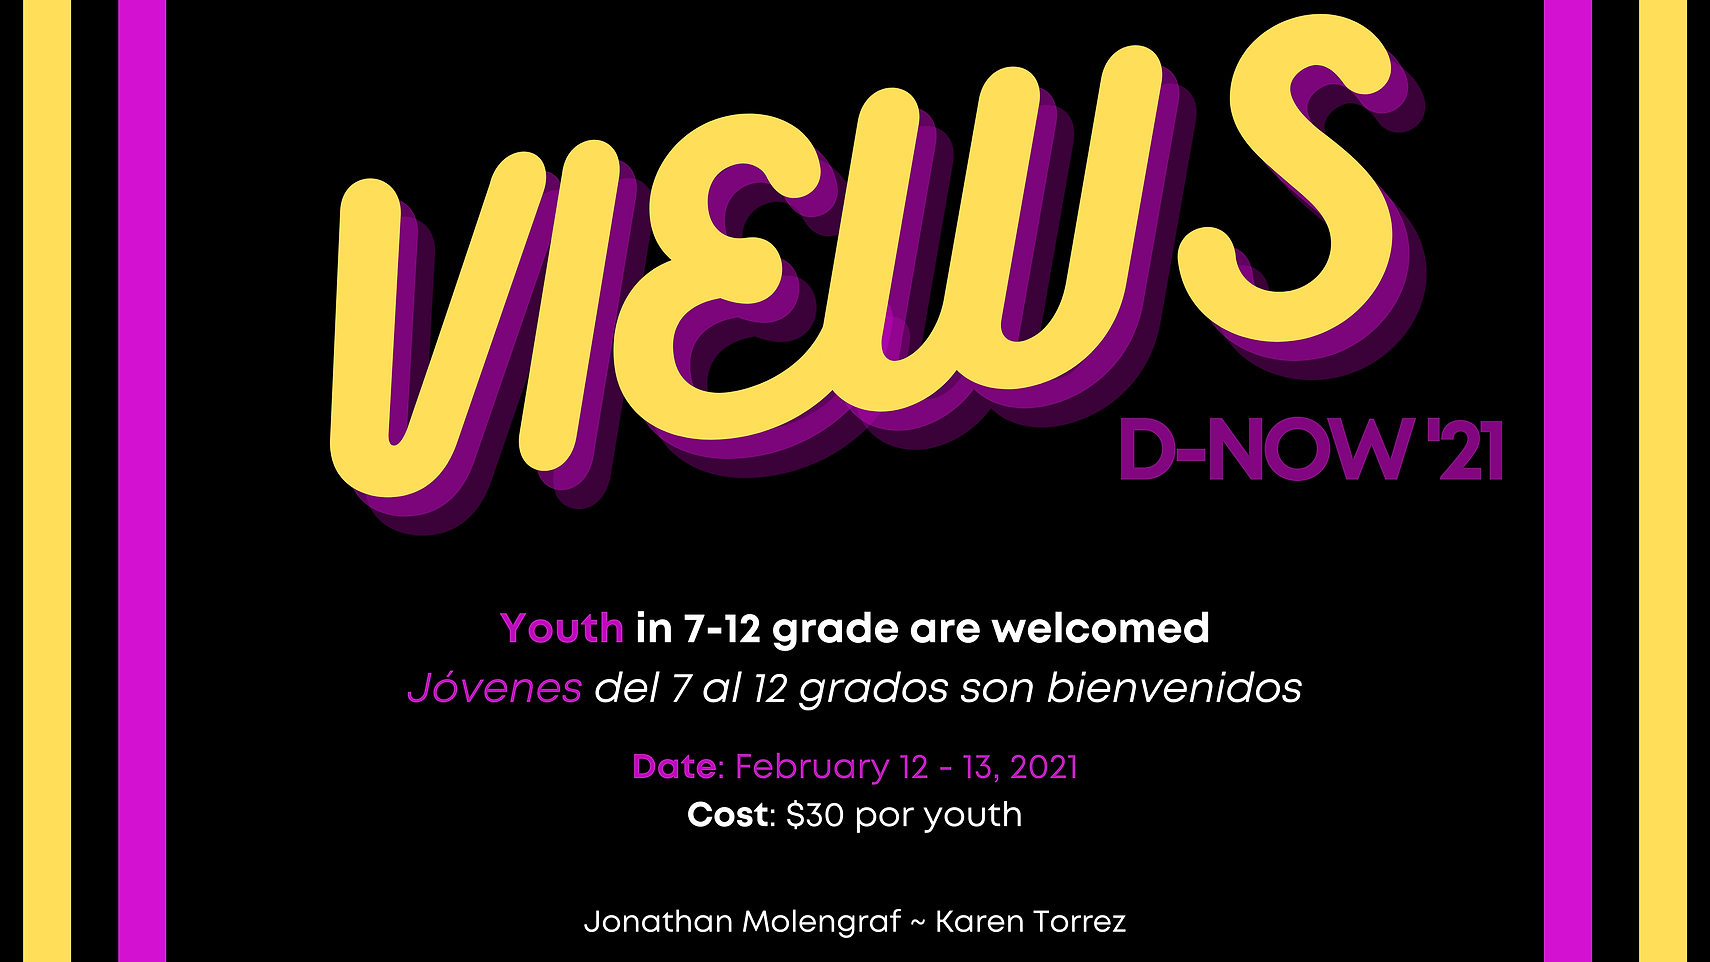 D-Now '21 - VIEWS.PNG